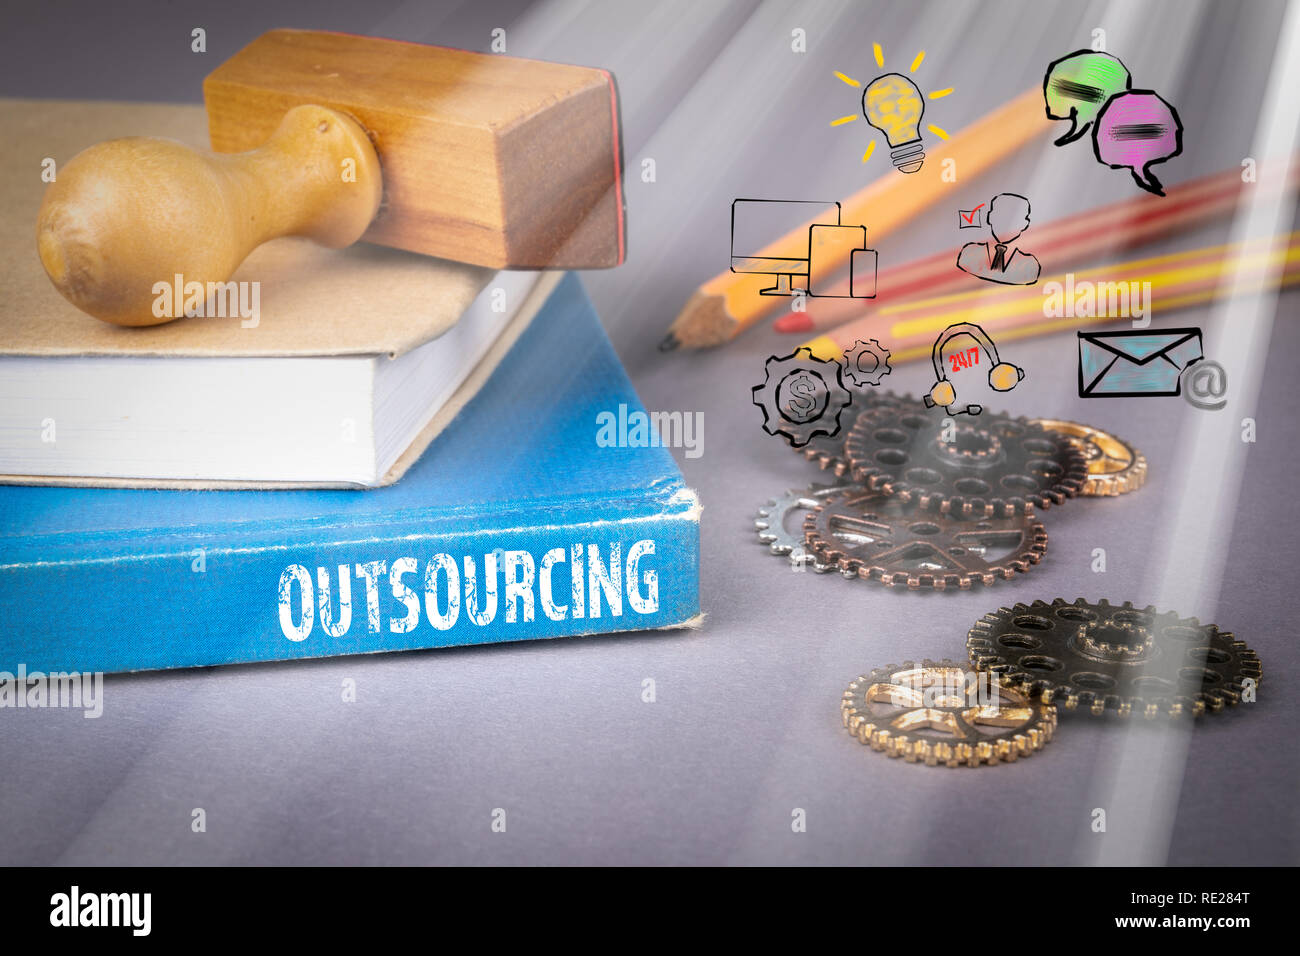 Outsourcing concept. blue book on a gray office table - Stock Image